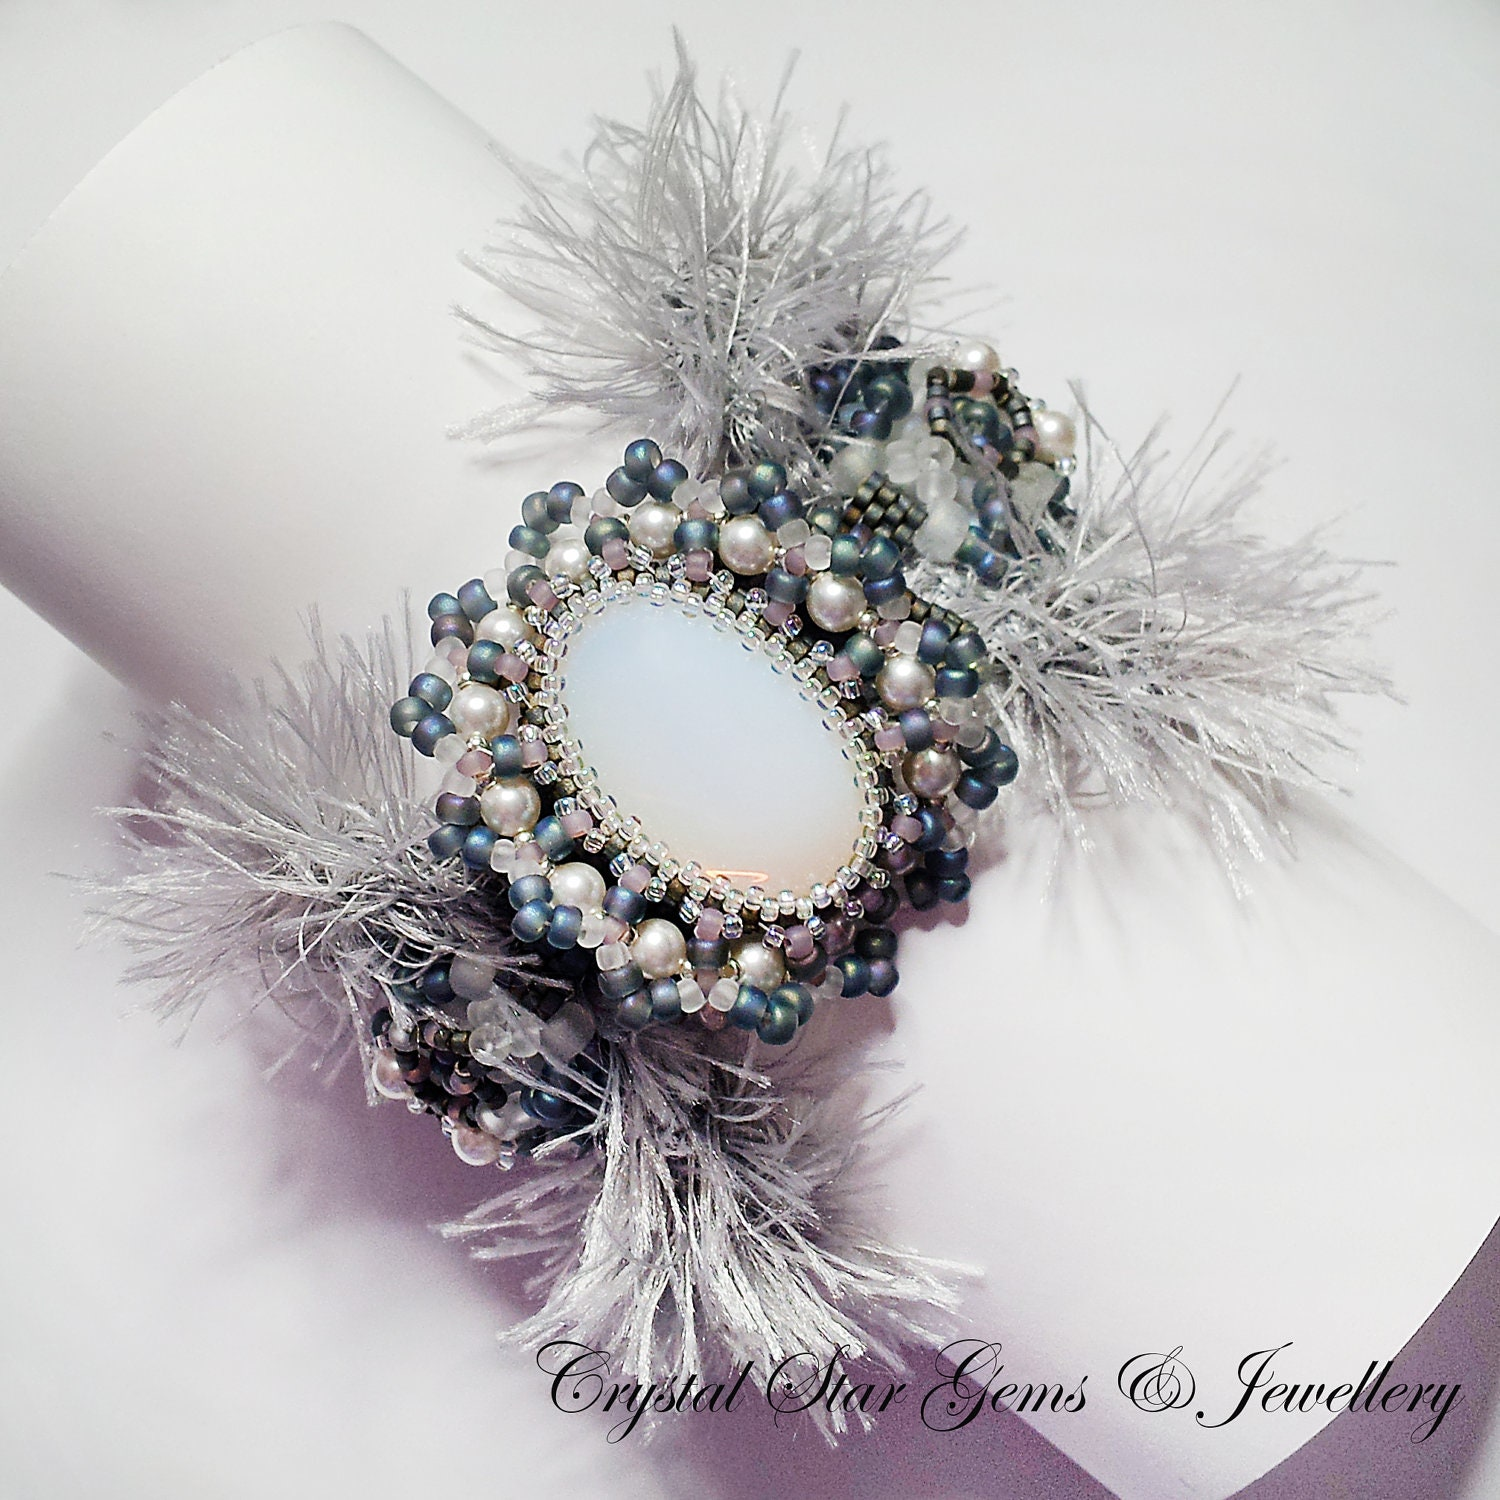 Misty Bead-woven Cuff - Crystalstargems